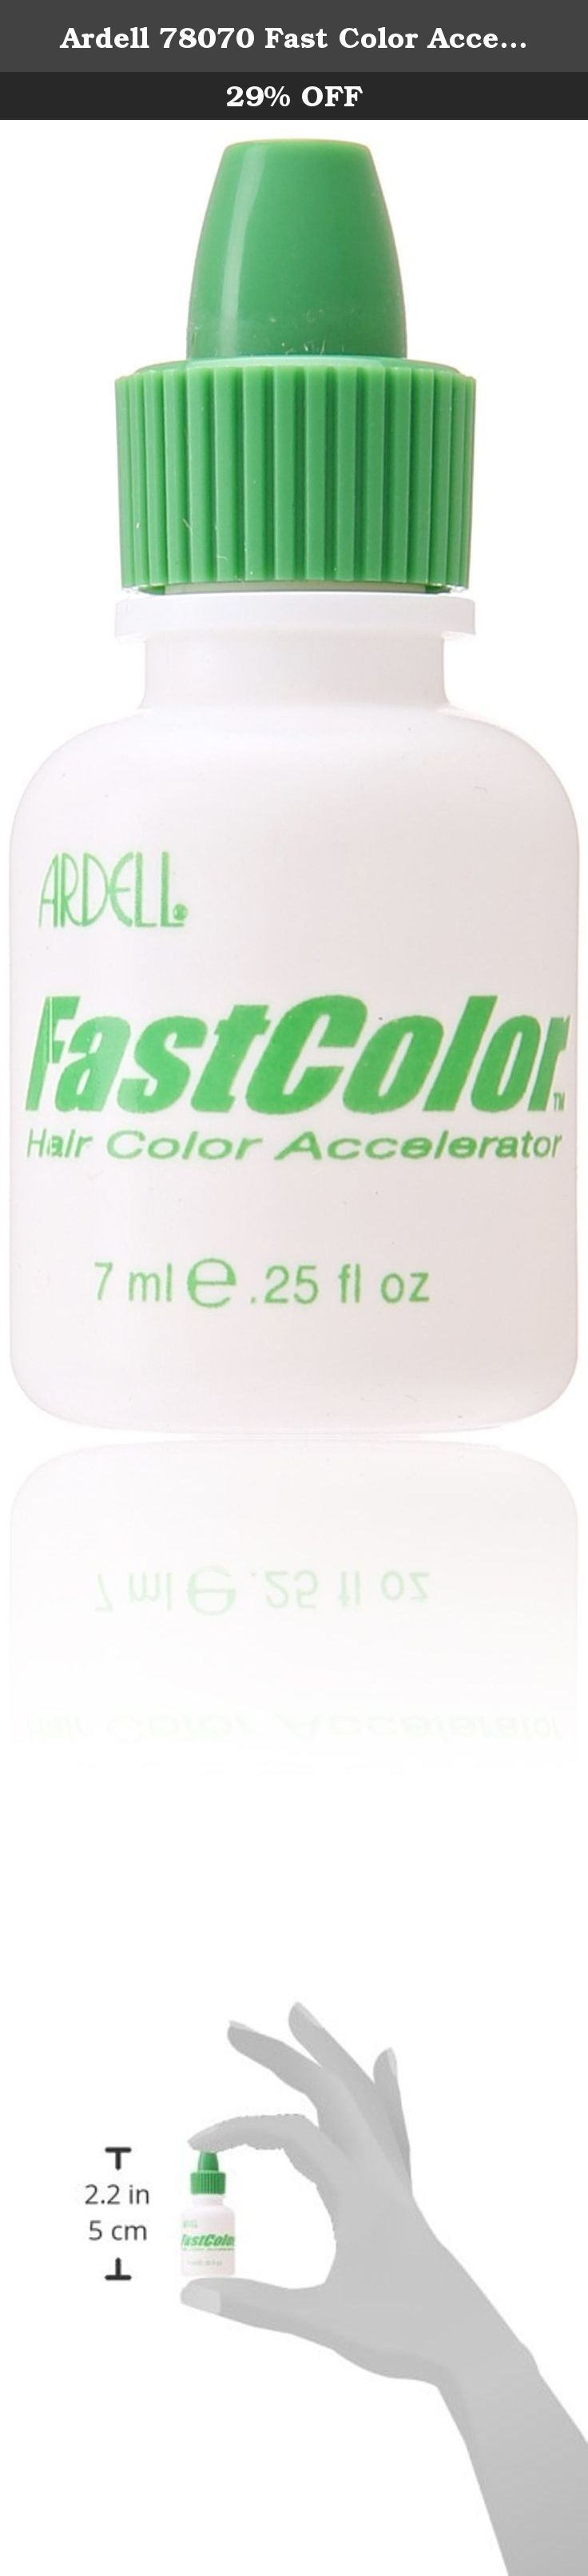 Ardell 78070 Fast Color Accelerator, 0.25 Ounce. Ardell 78070 fast color accelerator, 1/4 ounce bottle. Fast color, a hair color additive that processes color in half the time without damaging the hair or compromising textural integrity. Simply add a few drops of fast color to any bleach, toner, permanent color, semi-permanent color or demi-permanent color to process hair color in as little as 10 minutes. Rich in antioxidants and vitamins, fast color also improves gray coverage, enhances...